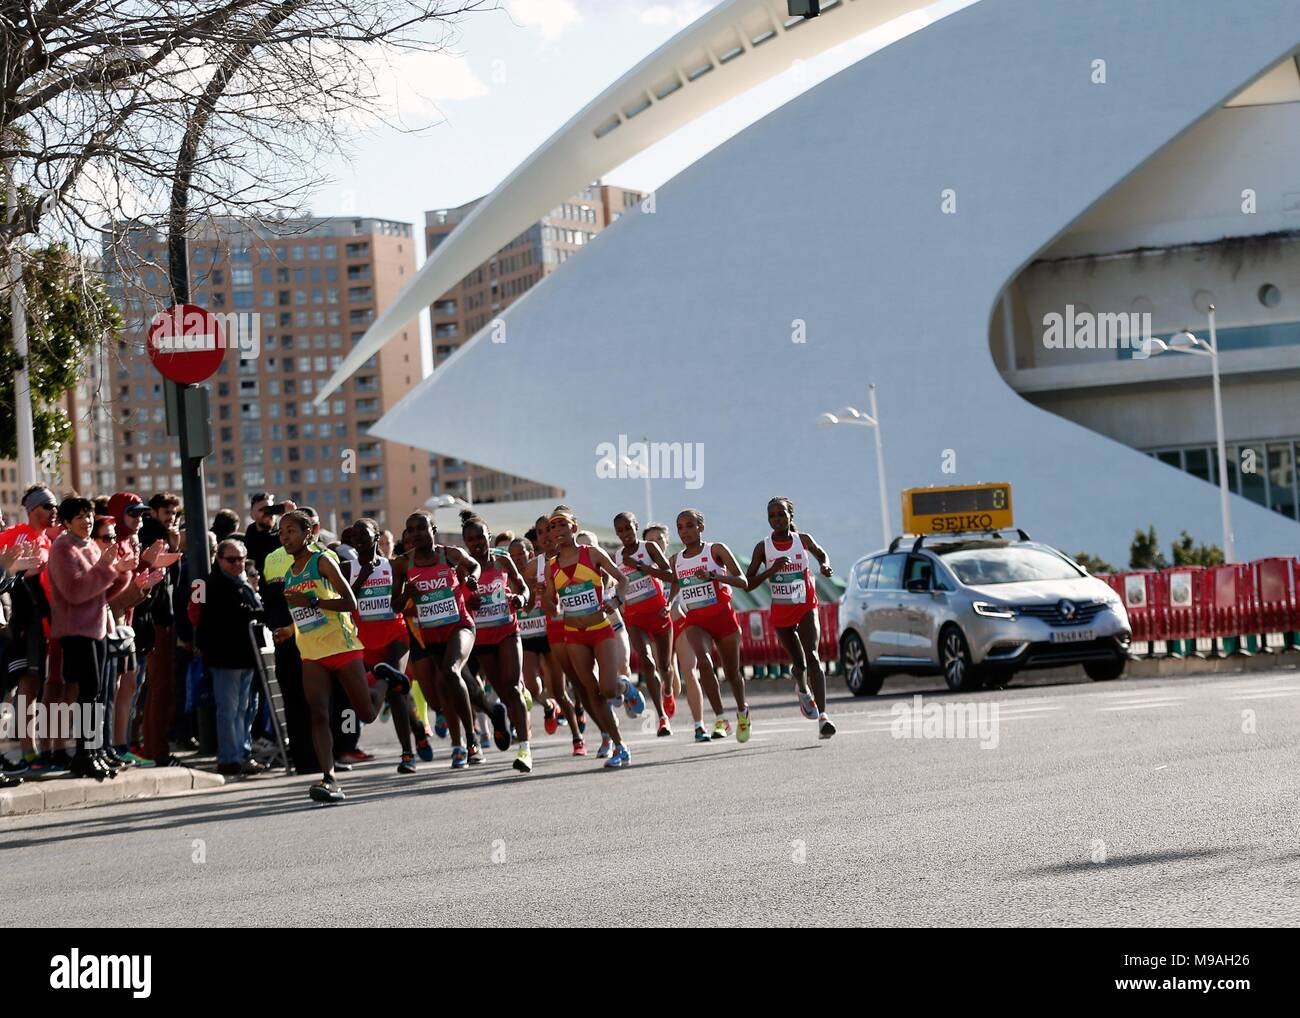 Athletes in action during the International Association of Athletics Federations (IAAF) Women's World Half Marathon Championships 2018 in Valencia, eastern Spain, 24 March 2018. EFE/MANUEL BRUQUE - Stock Image